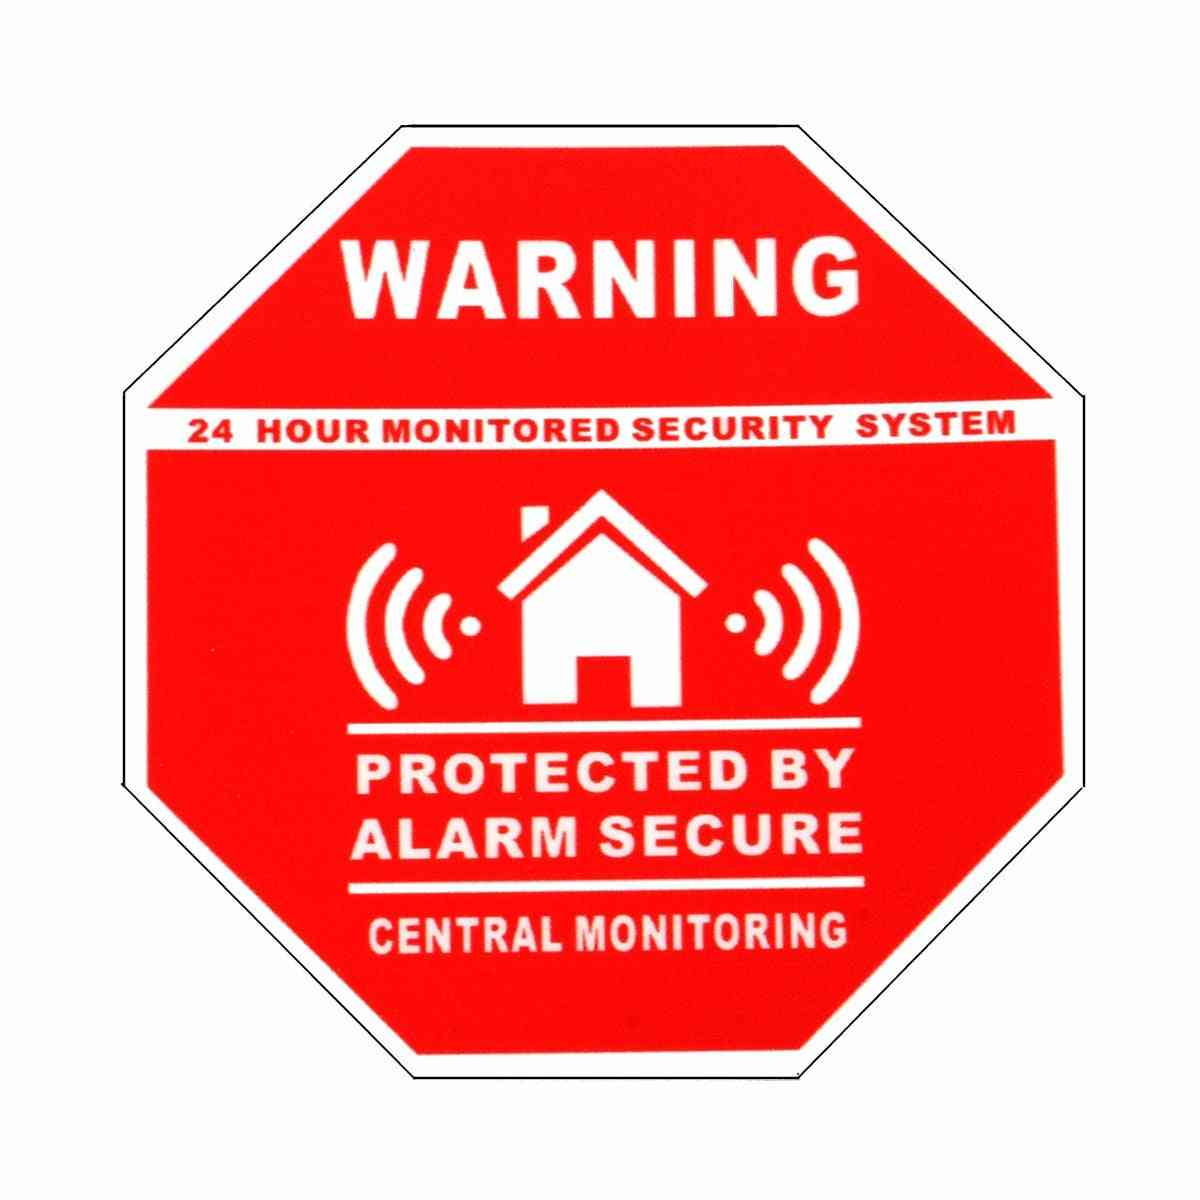 Alarm Security Stickers / Decals Signs For Windows & Doors Warning Safety